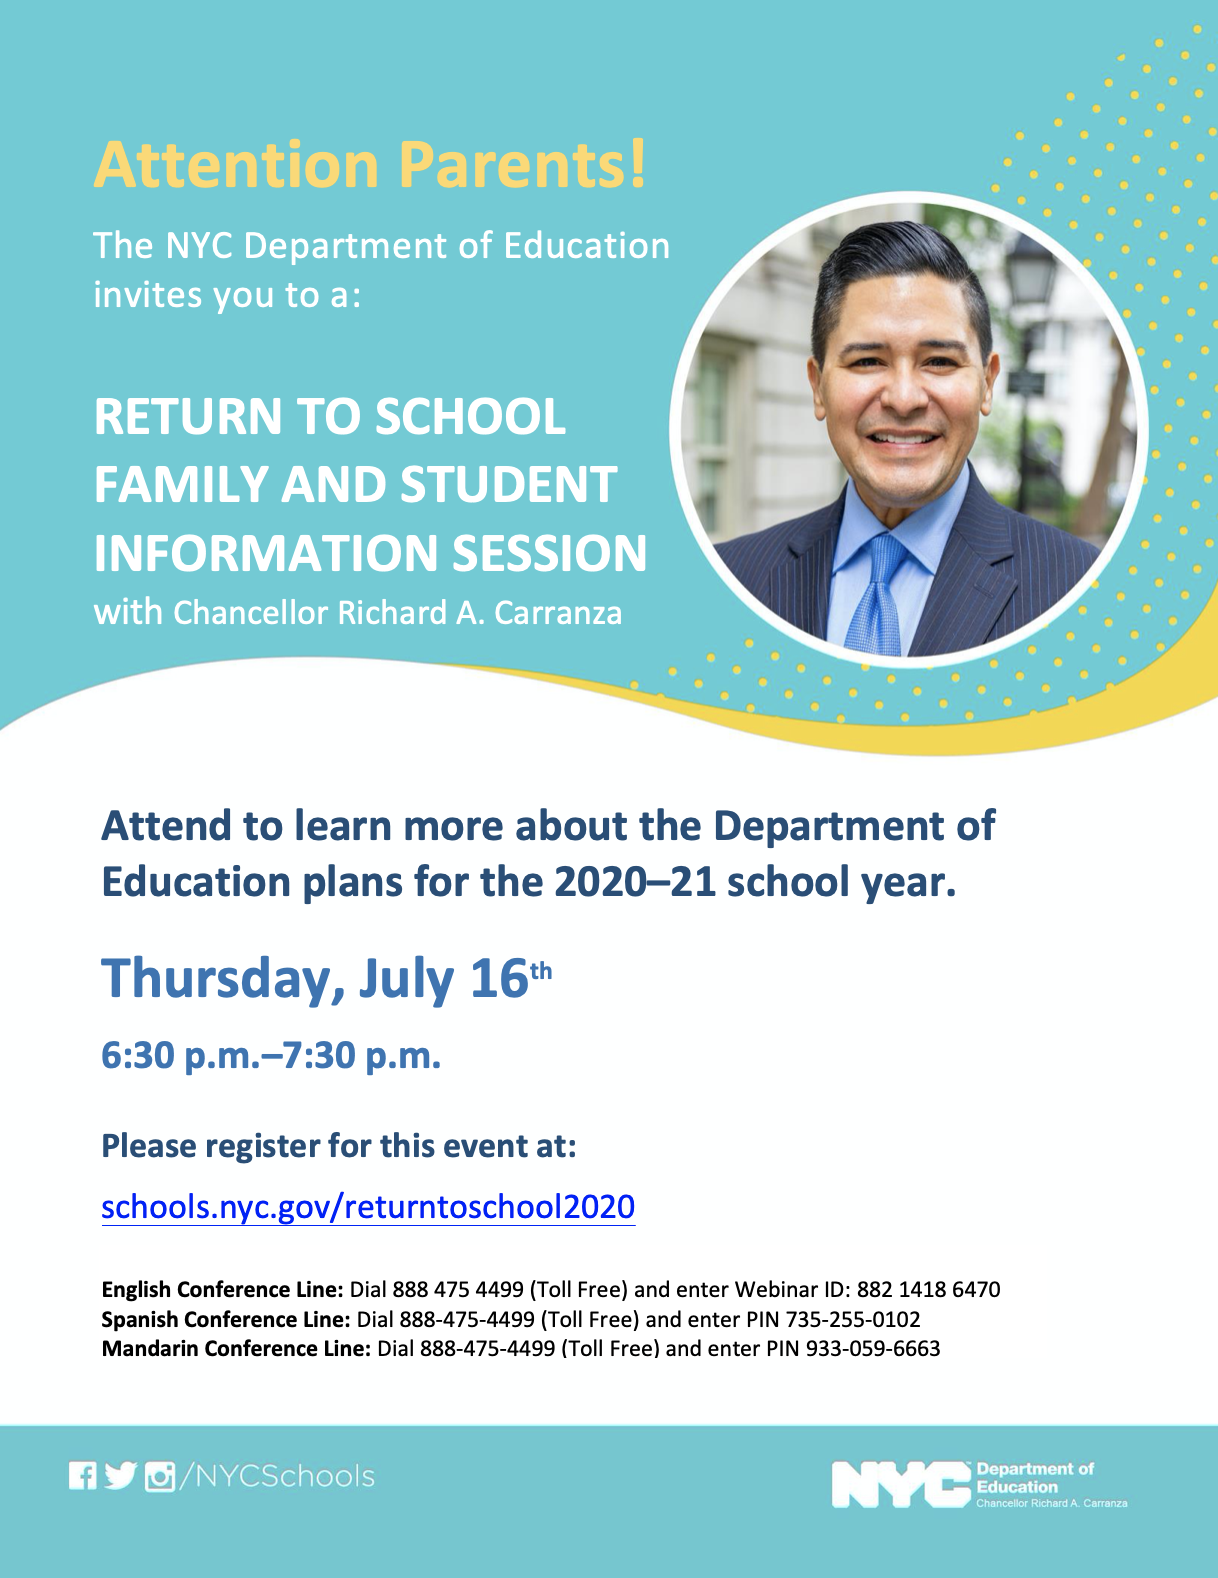 Return to School Family and Student Information Session - Thursday, July 16, 6:30-7:30 PM